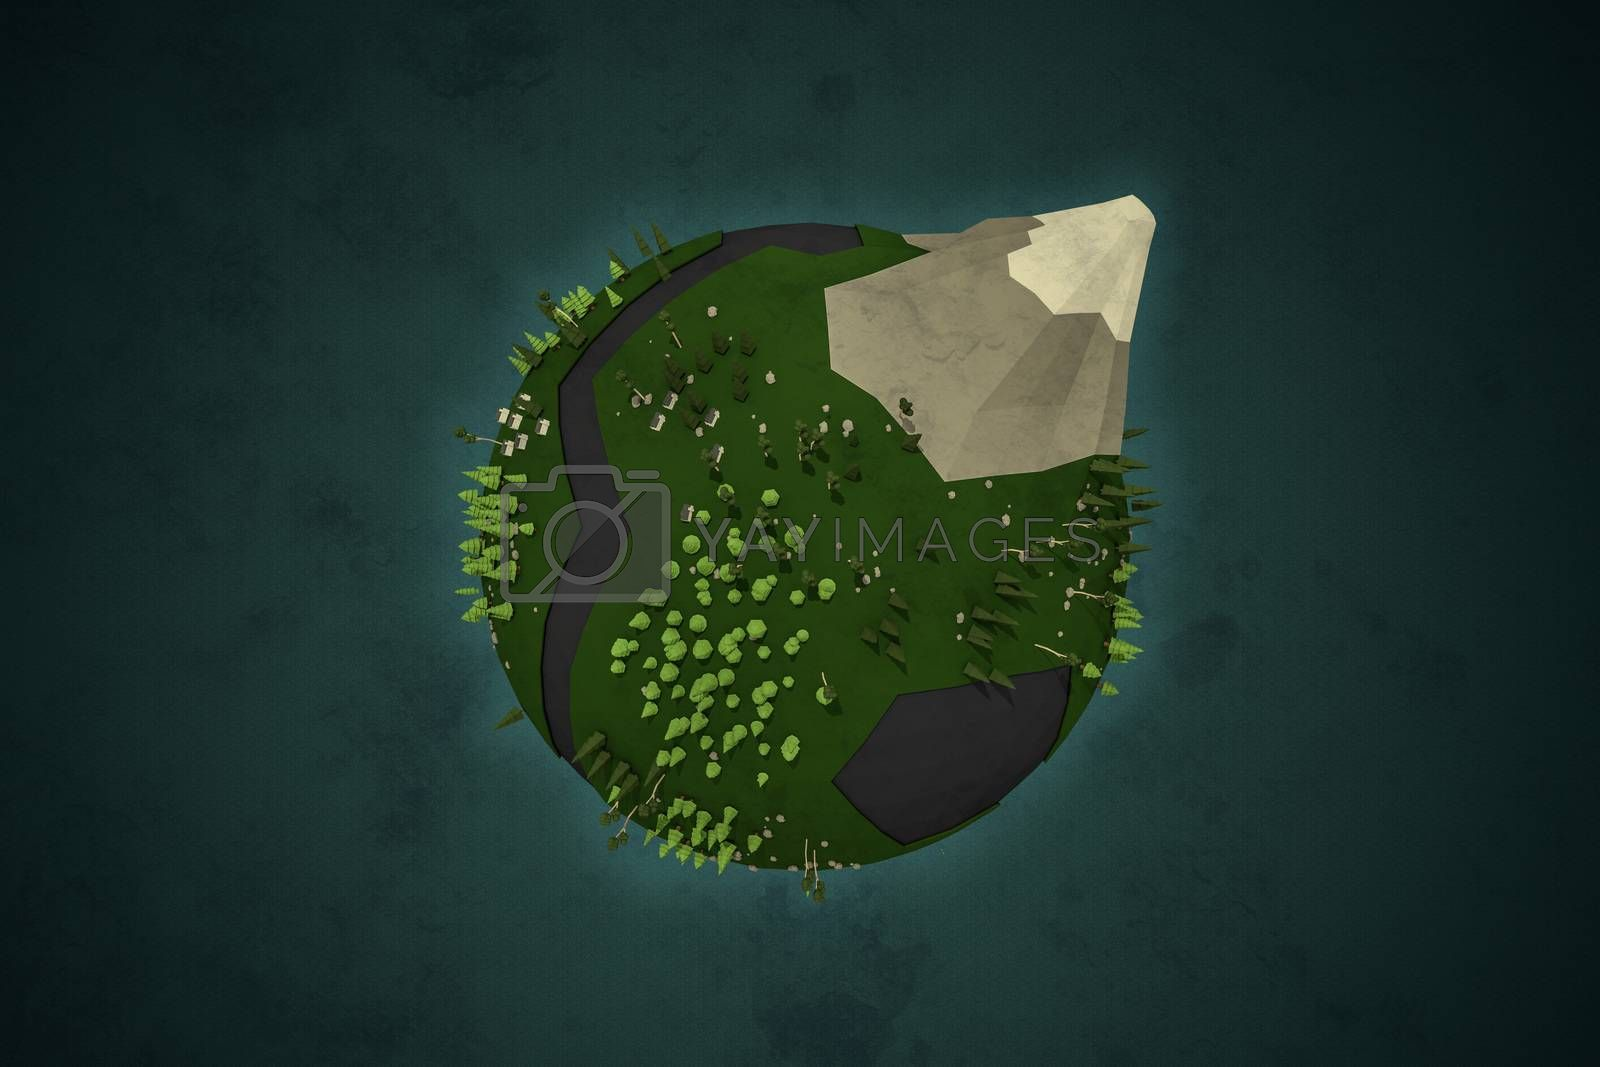 3d illustration of a low poly planet